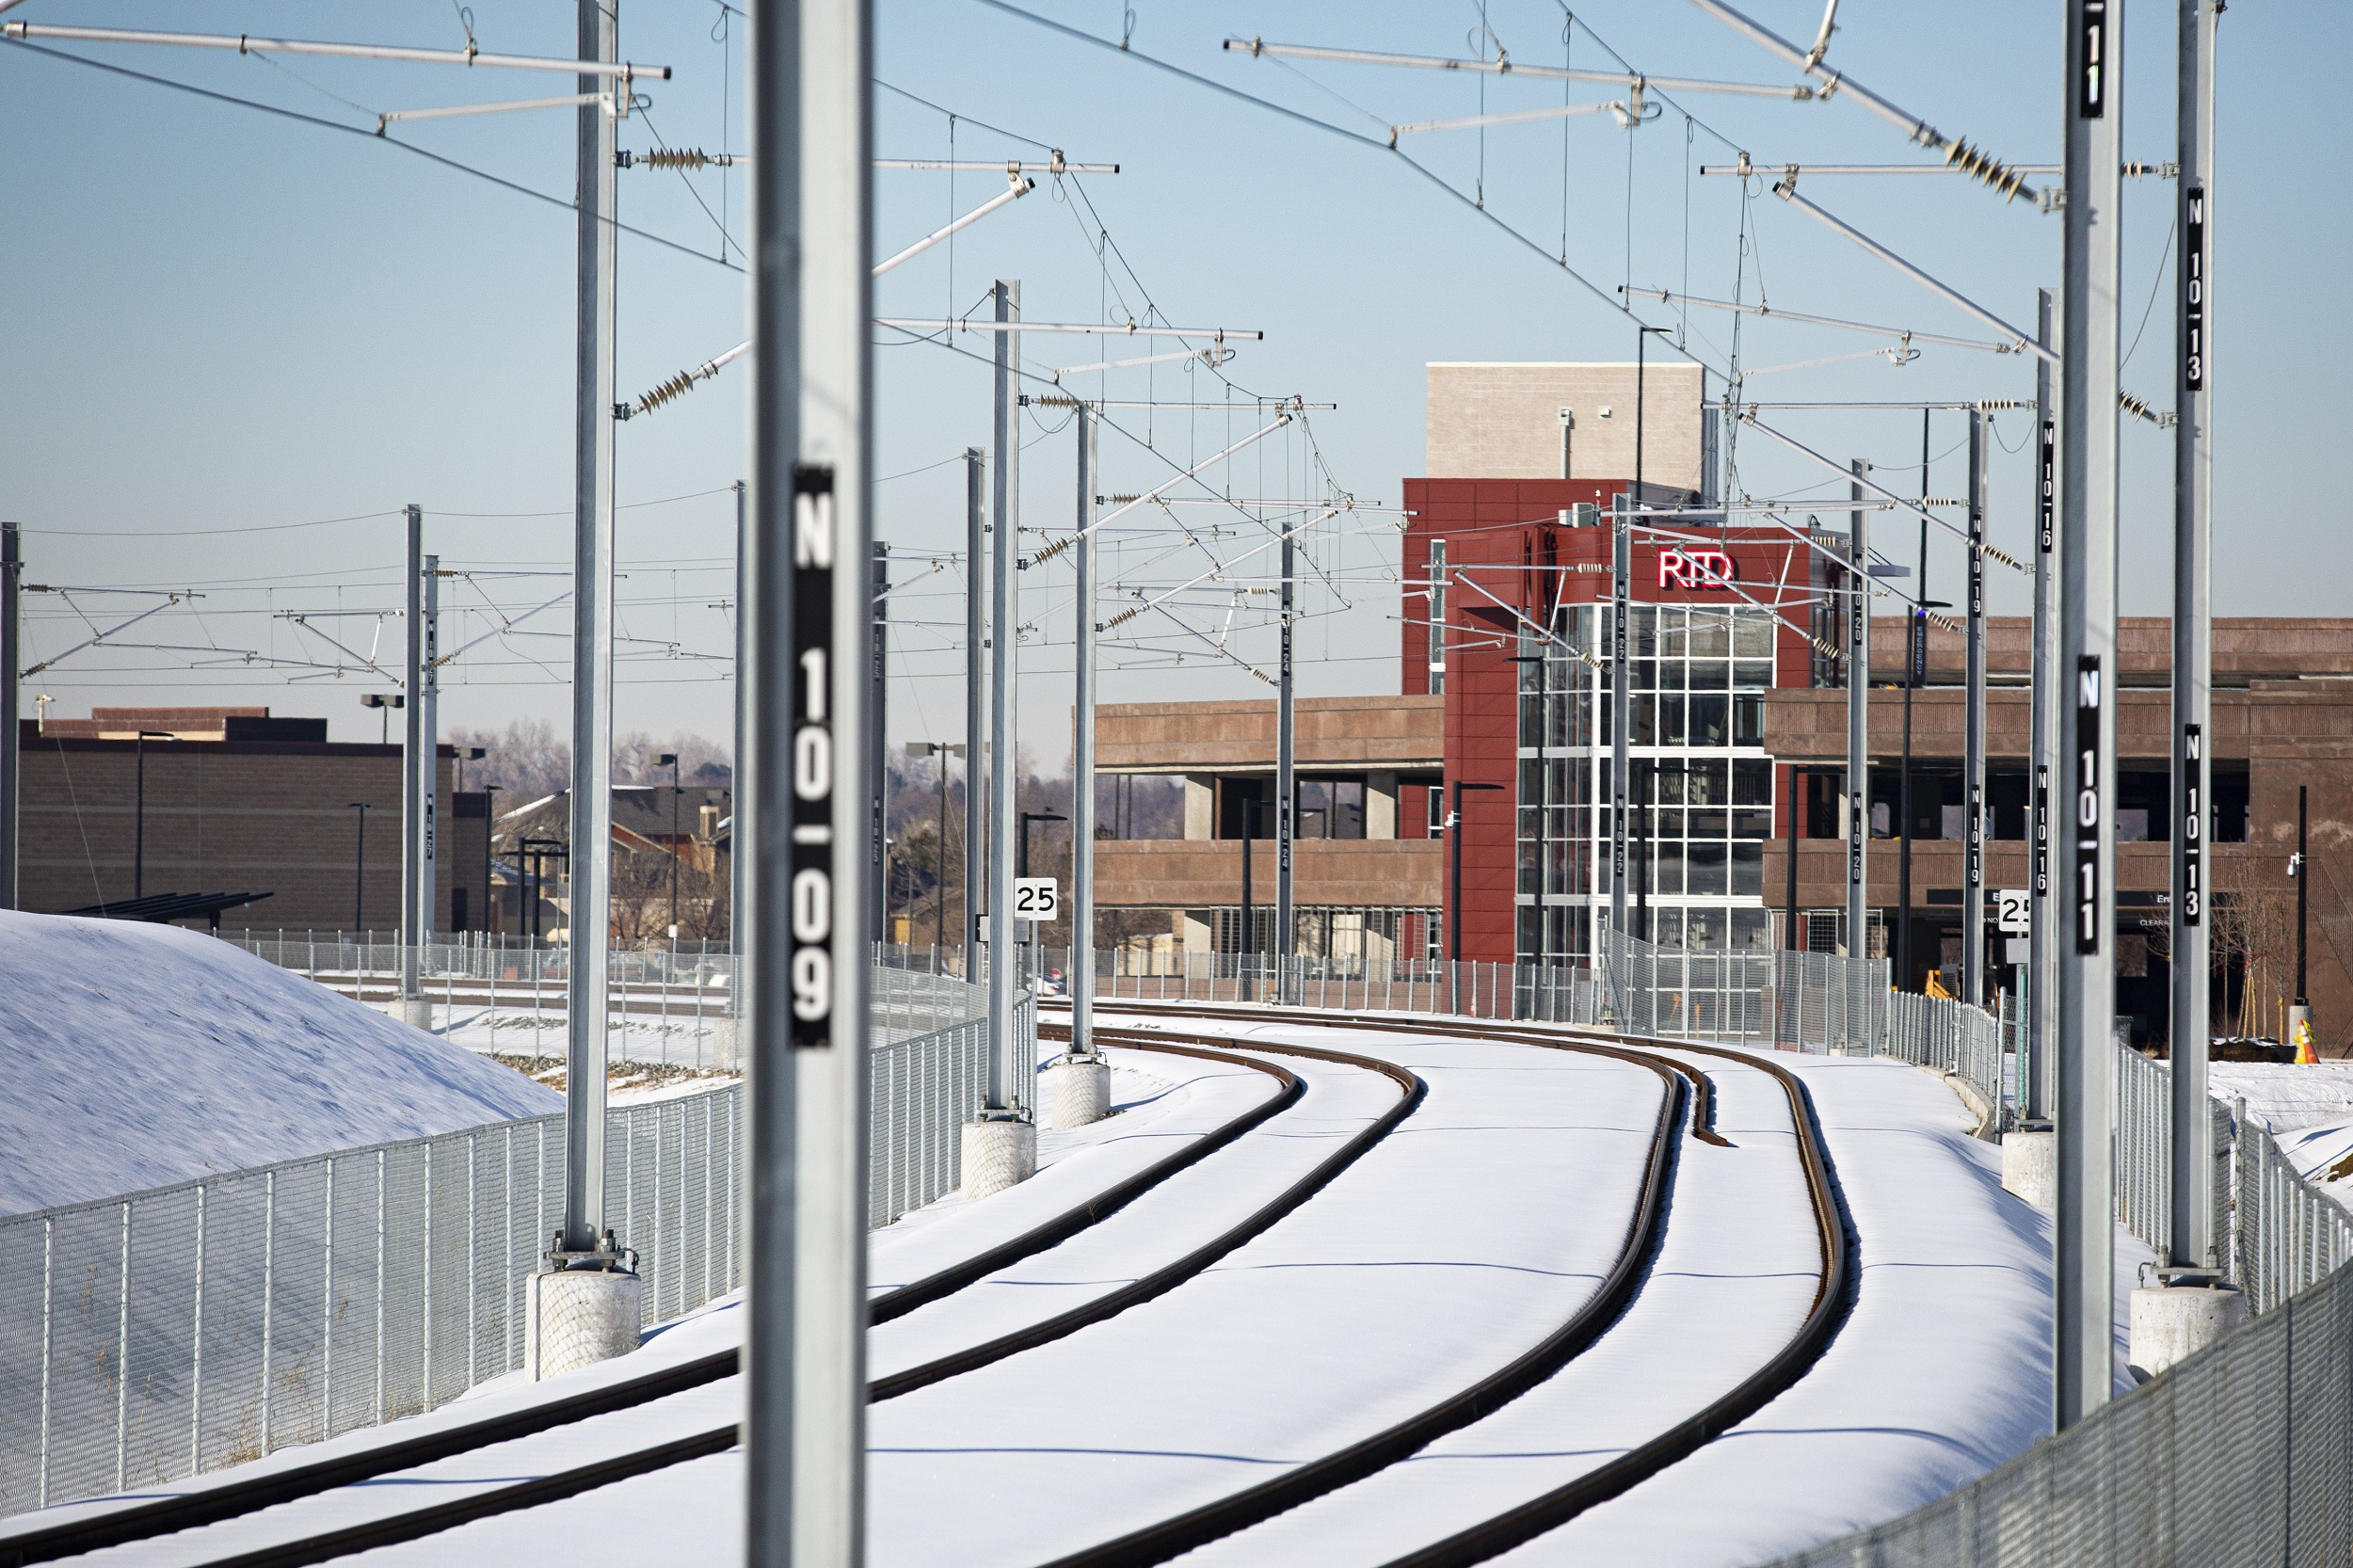 Tracks and a park and ride for RTD's N Line as seen from Colorado Boulevard in Thornton, Colorado in February 2020.